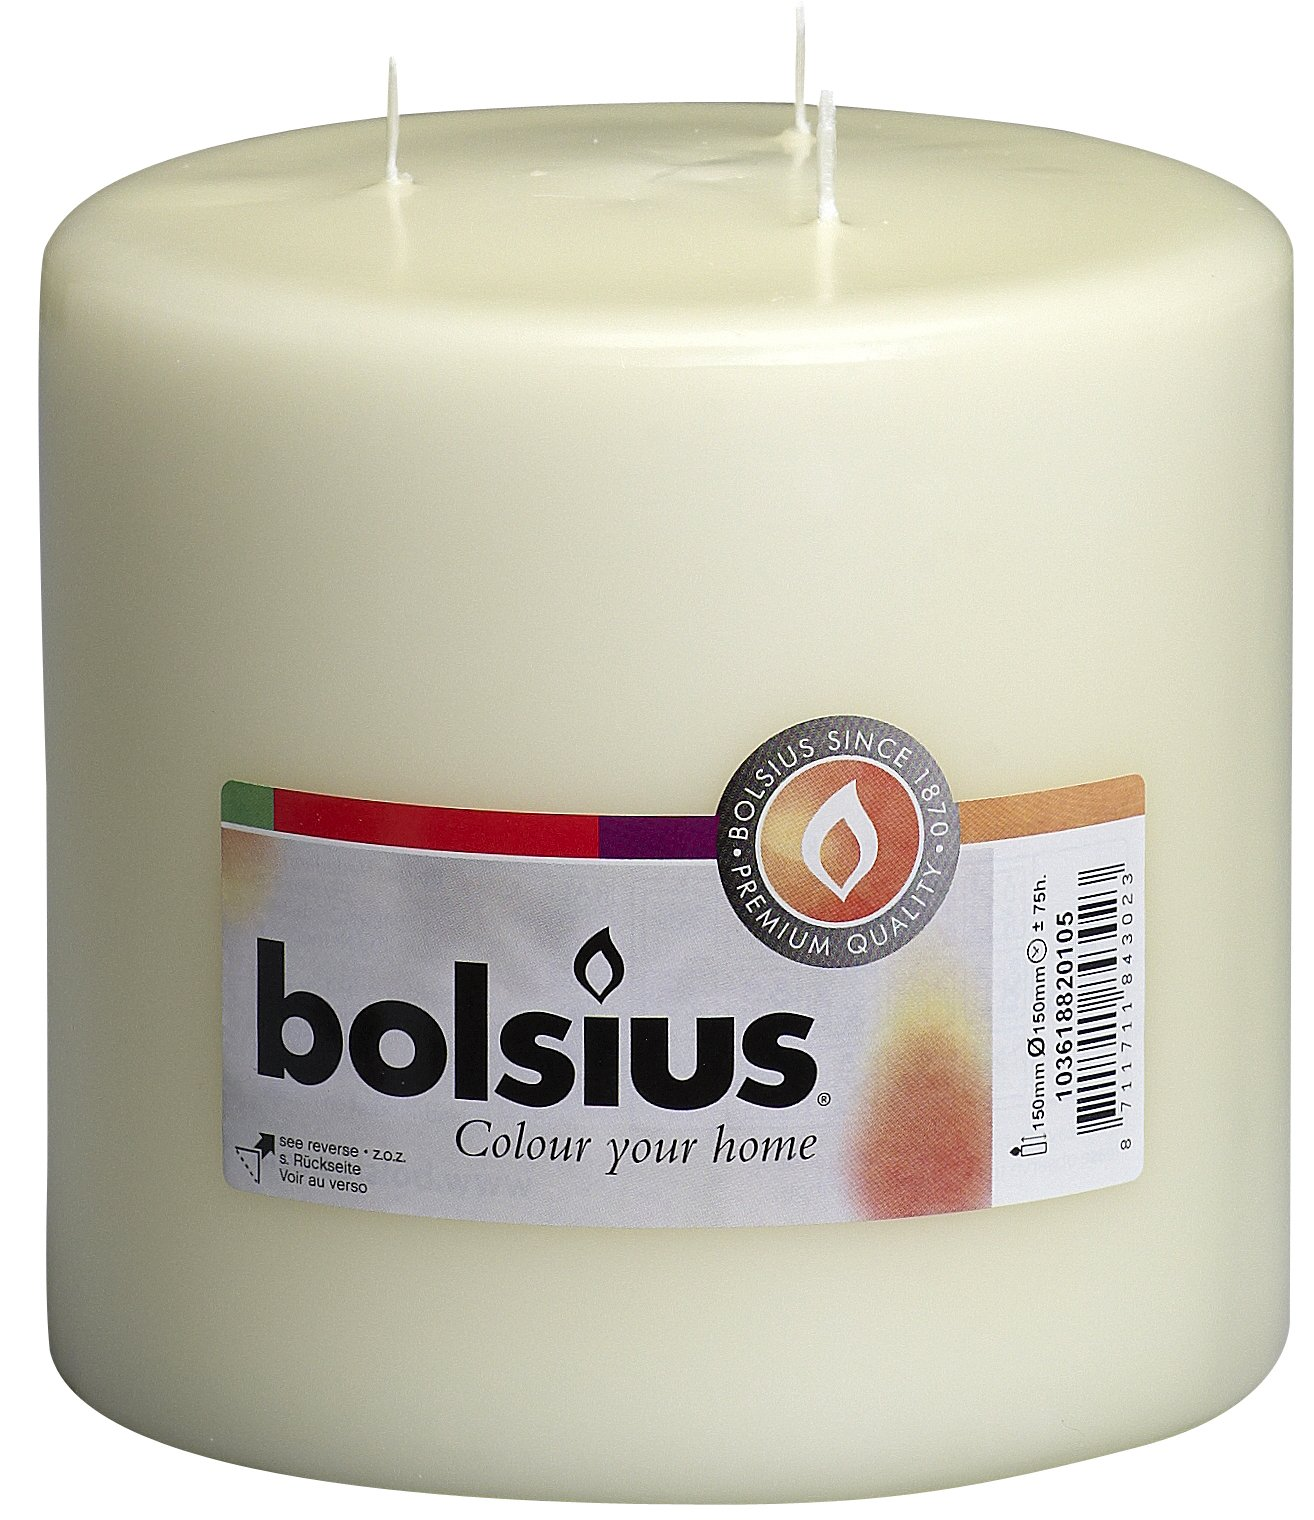 BOLSIUS Ivory Pillar Candles - 75 Long Burning Hours Candle Set - 6-inch x 6-inch Dripless Candle - Perfect for Wedding Candles, Parties and Special Occasions